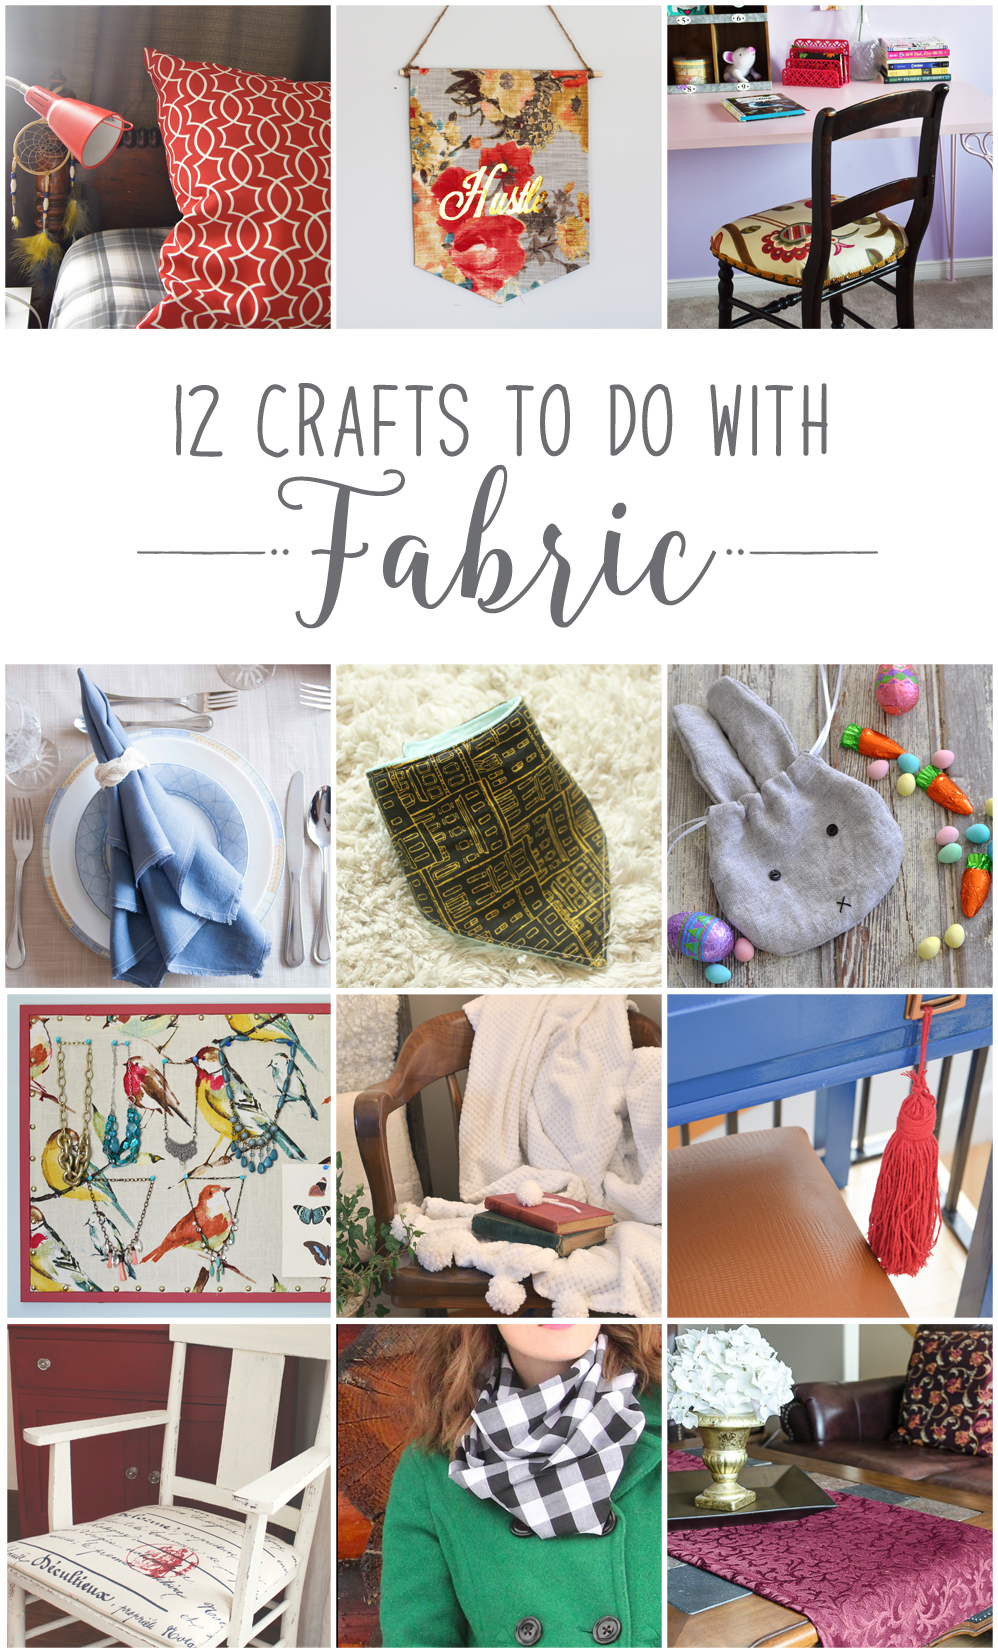 12 Crafts you can make with one yard of fabric. From cushions, linen napkins, chair refinishing, chenille blankets, Easter bunny treat bags, table runners and more, these creative DIY projects will have you dusting off your sewing machine in no time.